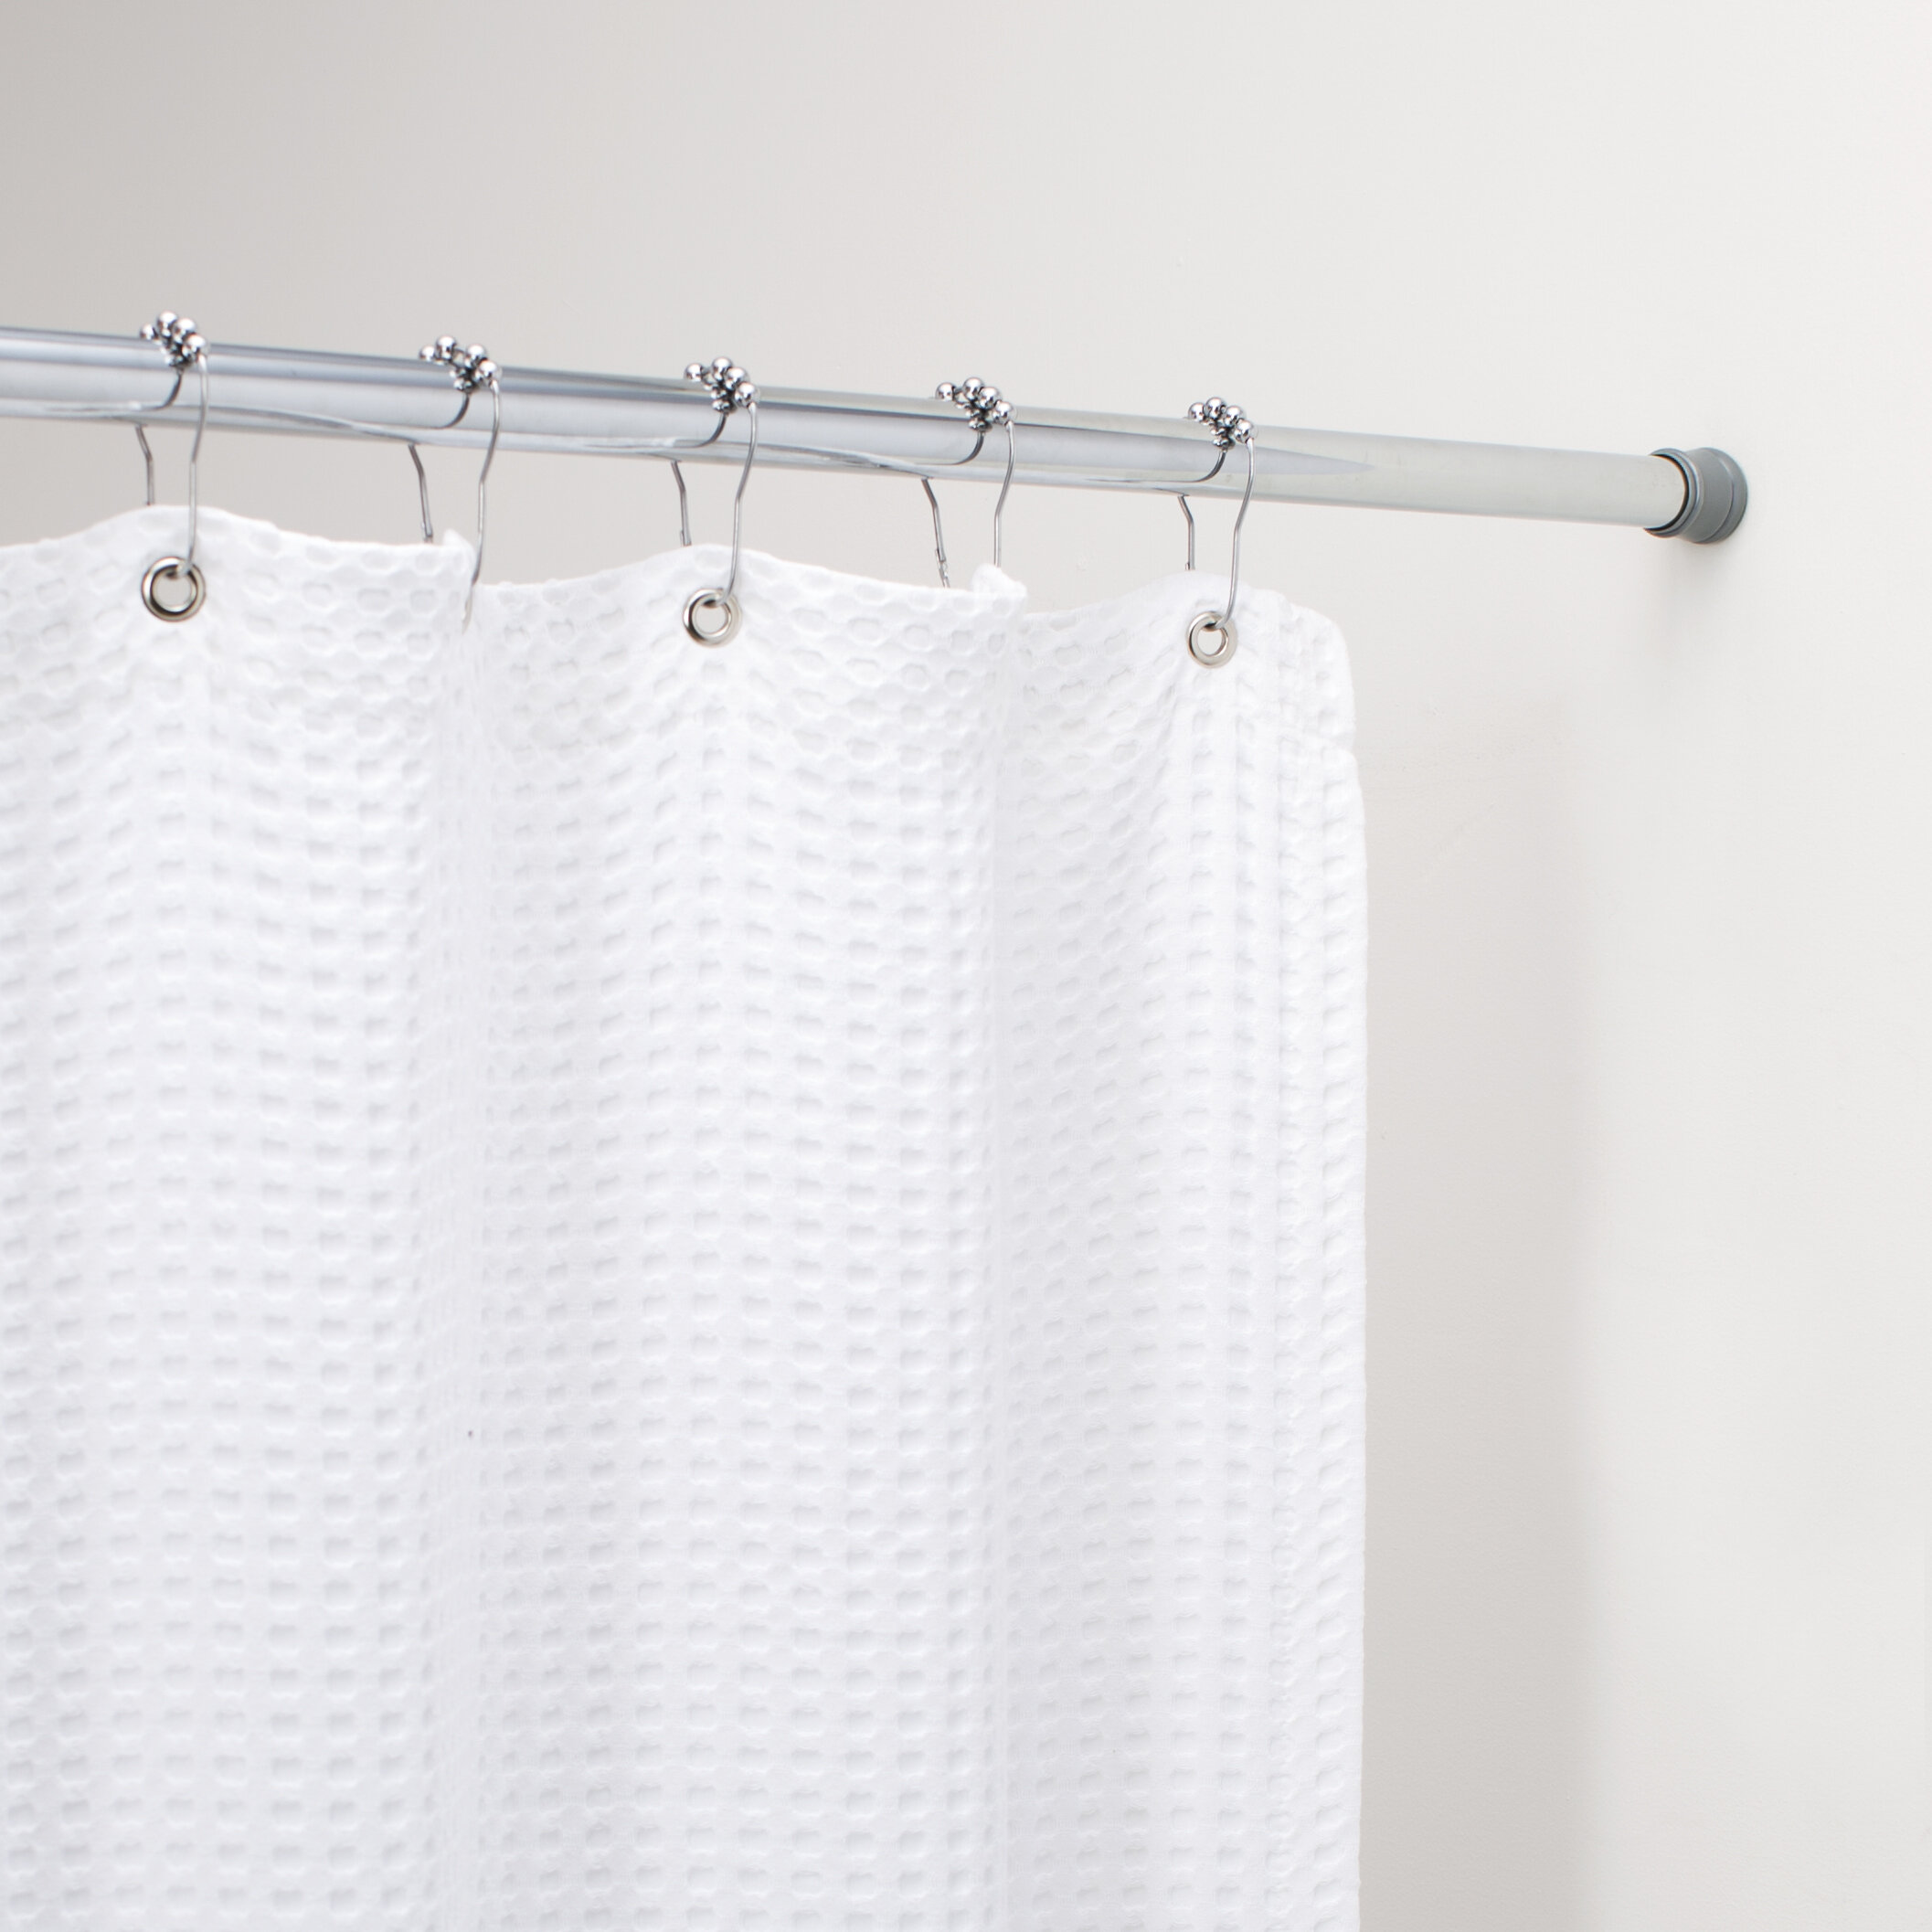 Wayfair BasicsTM Basics 76 Adjustable Straight Tension Shower Curtain Rod Reviews